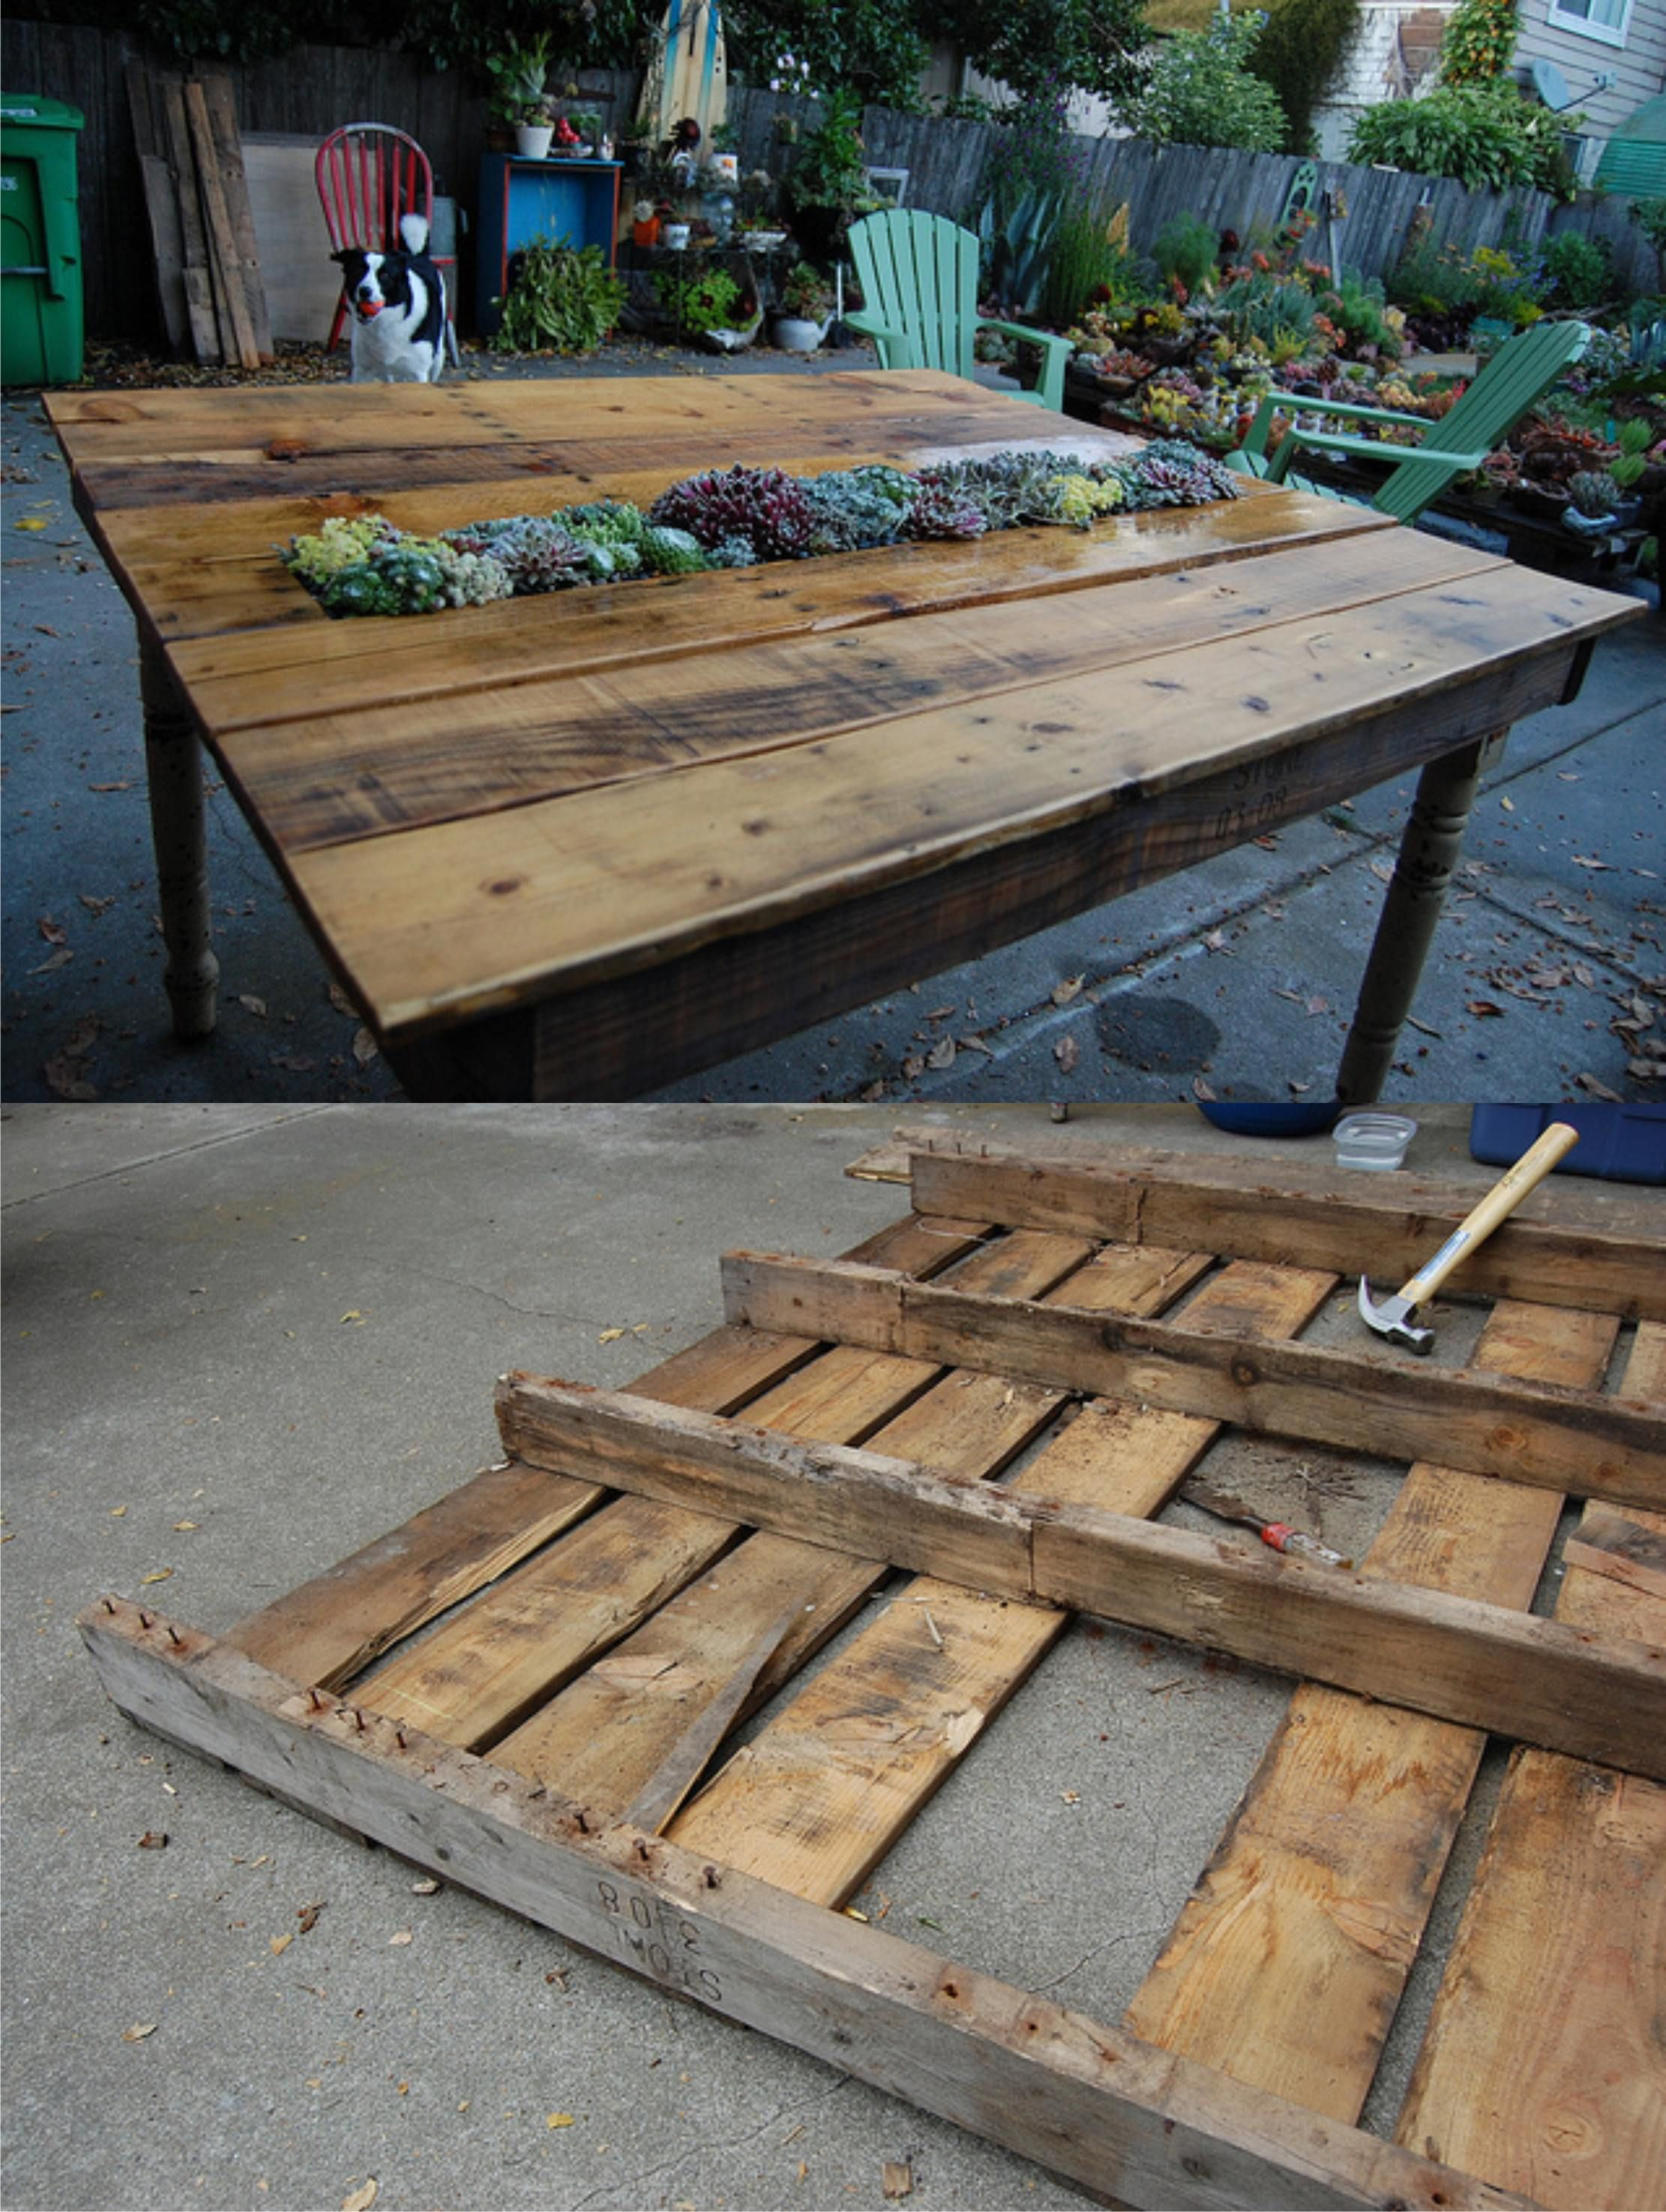 Mesa con peque o jard n hecha con un pal pallets diy for Palet jardin salon mesa